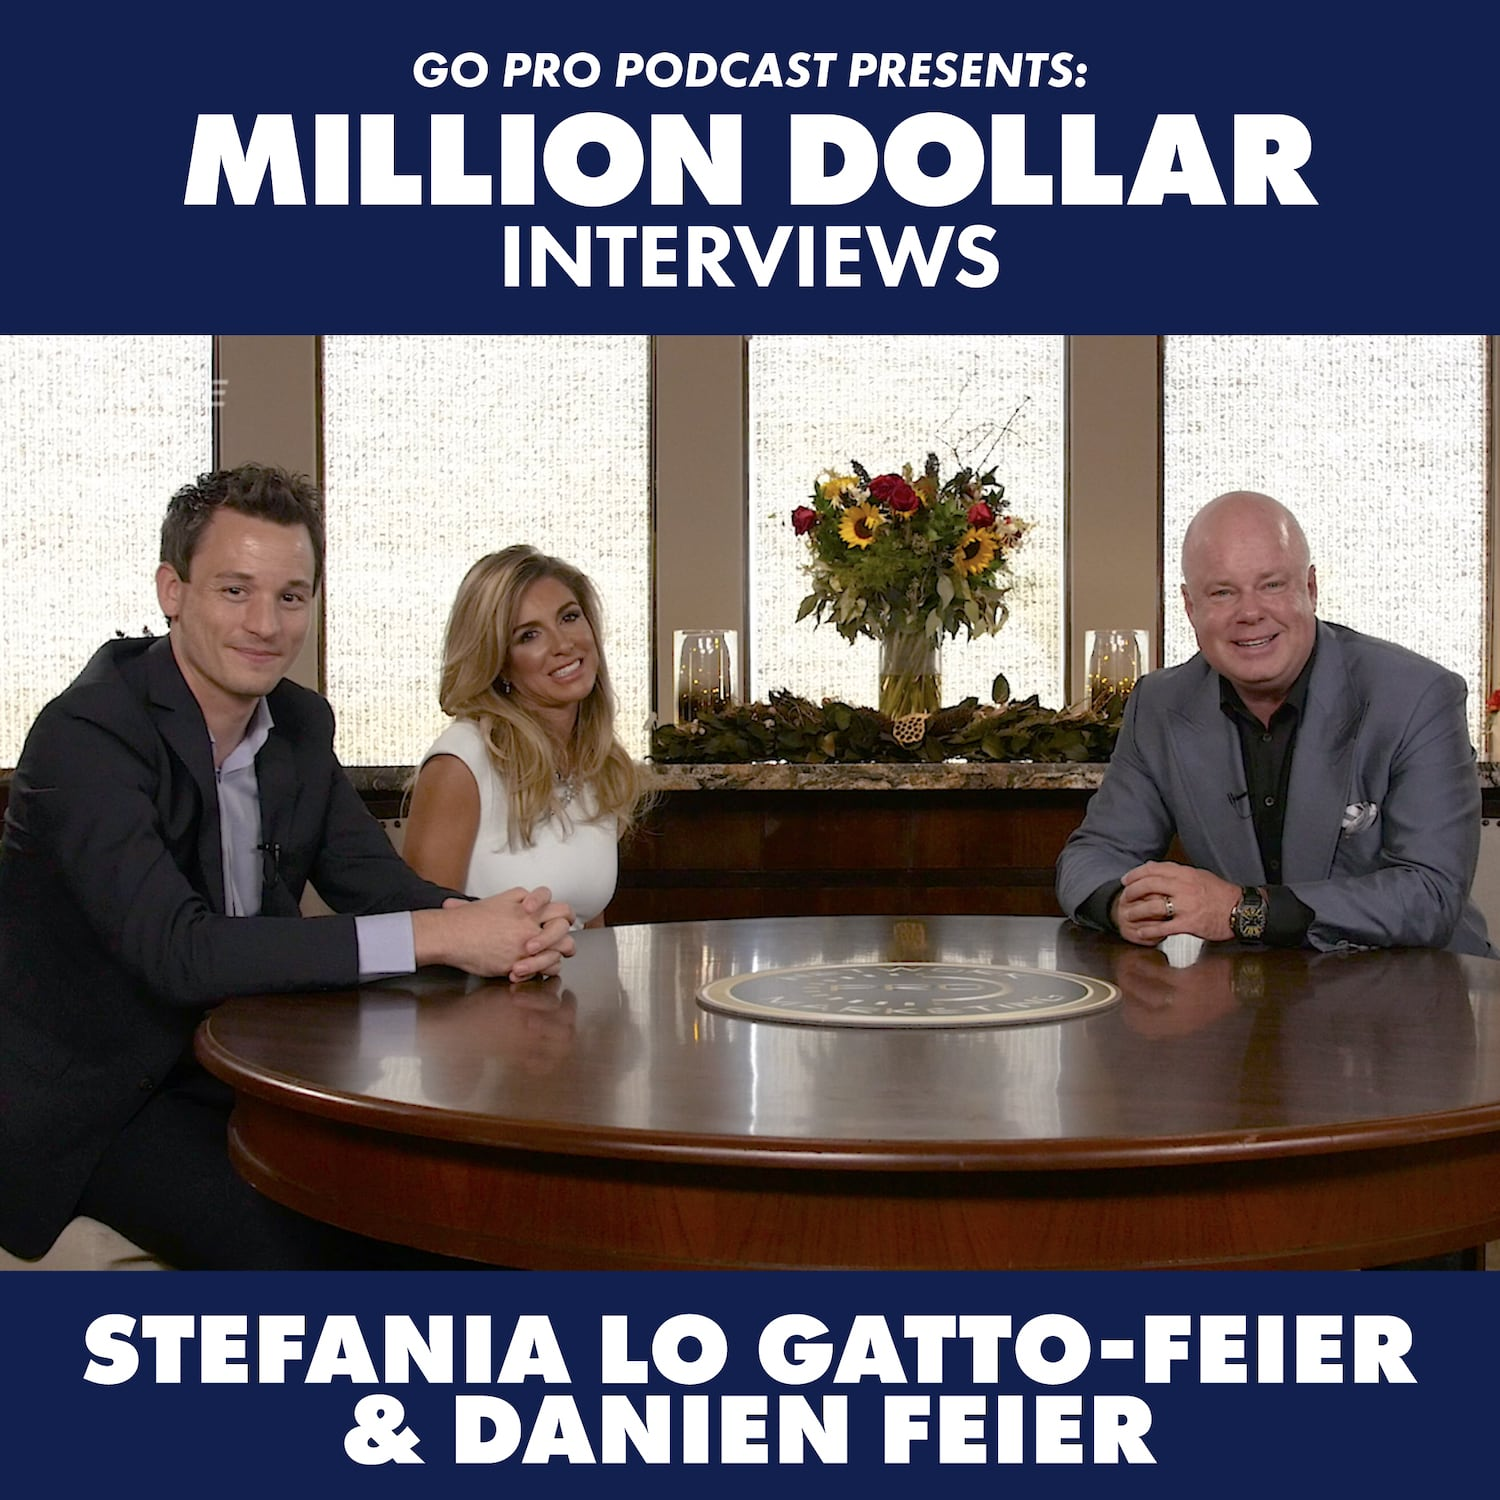 Stefania Lo Gatto-Feier & Danien Feier: Million-Dollar Power Couple